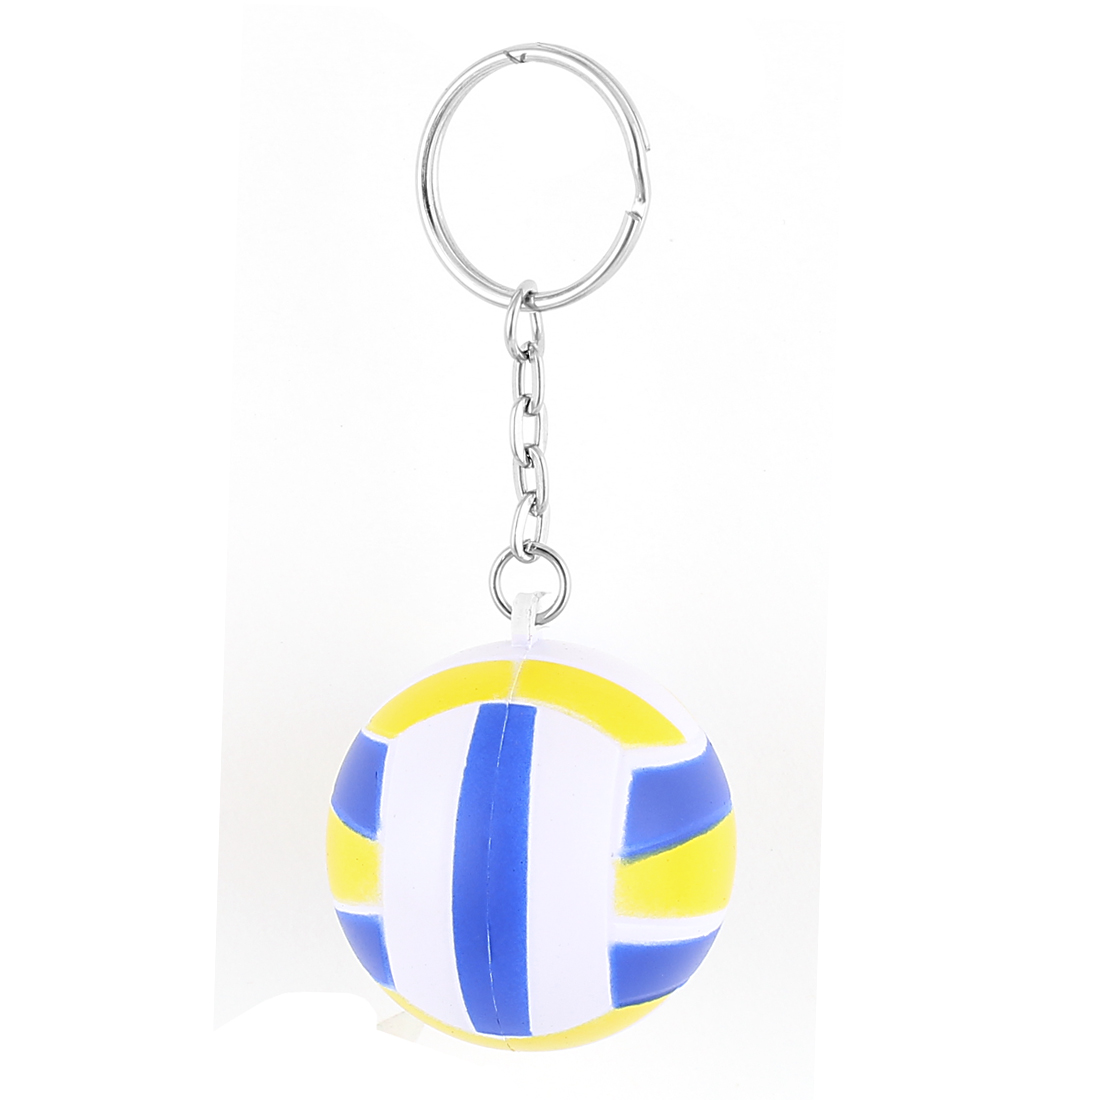 Rubber Volleyball Shaped Pendant Split Ring Keychain Keyring Yellow Blue White